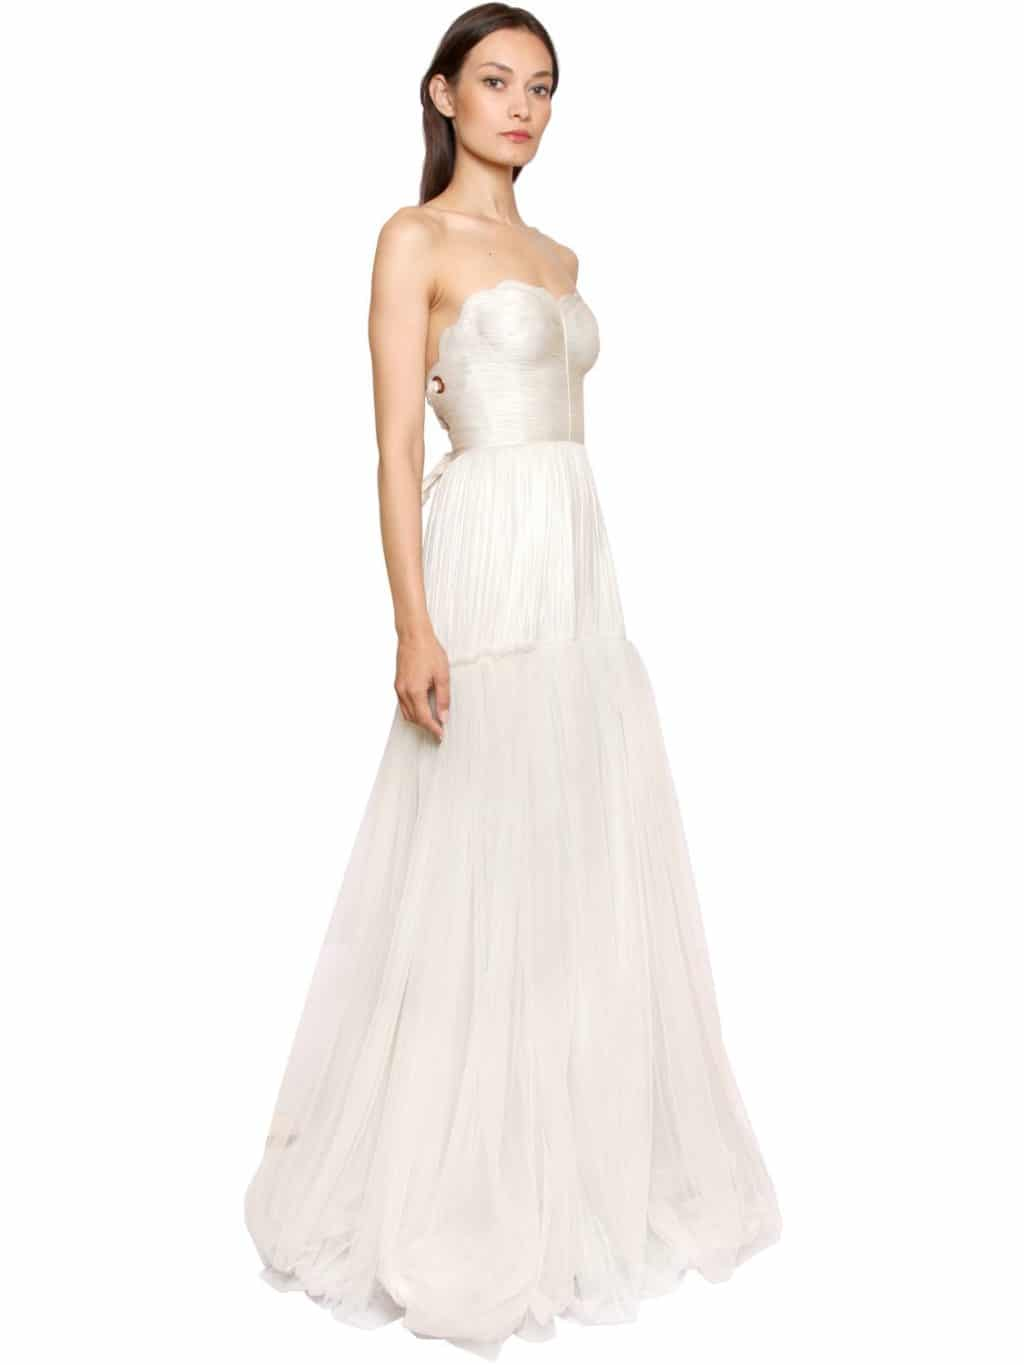 MARIA LUCIA HOHAN Laminated Silk Tulle Ivory Gown